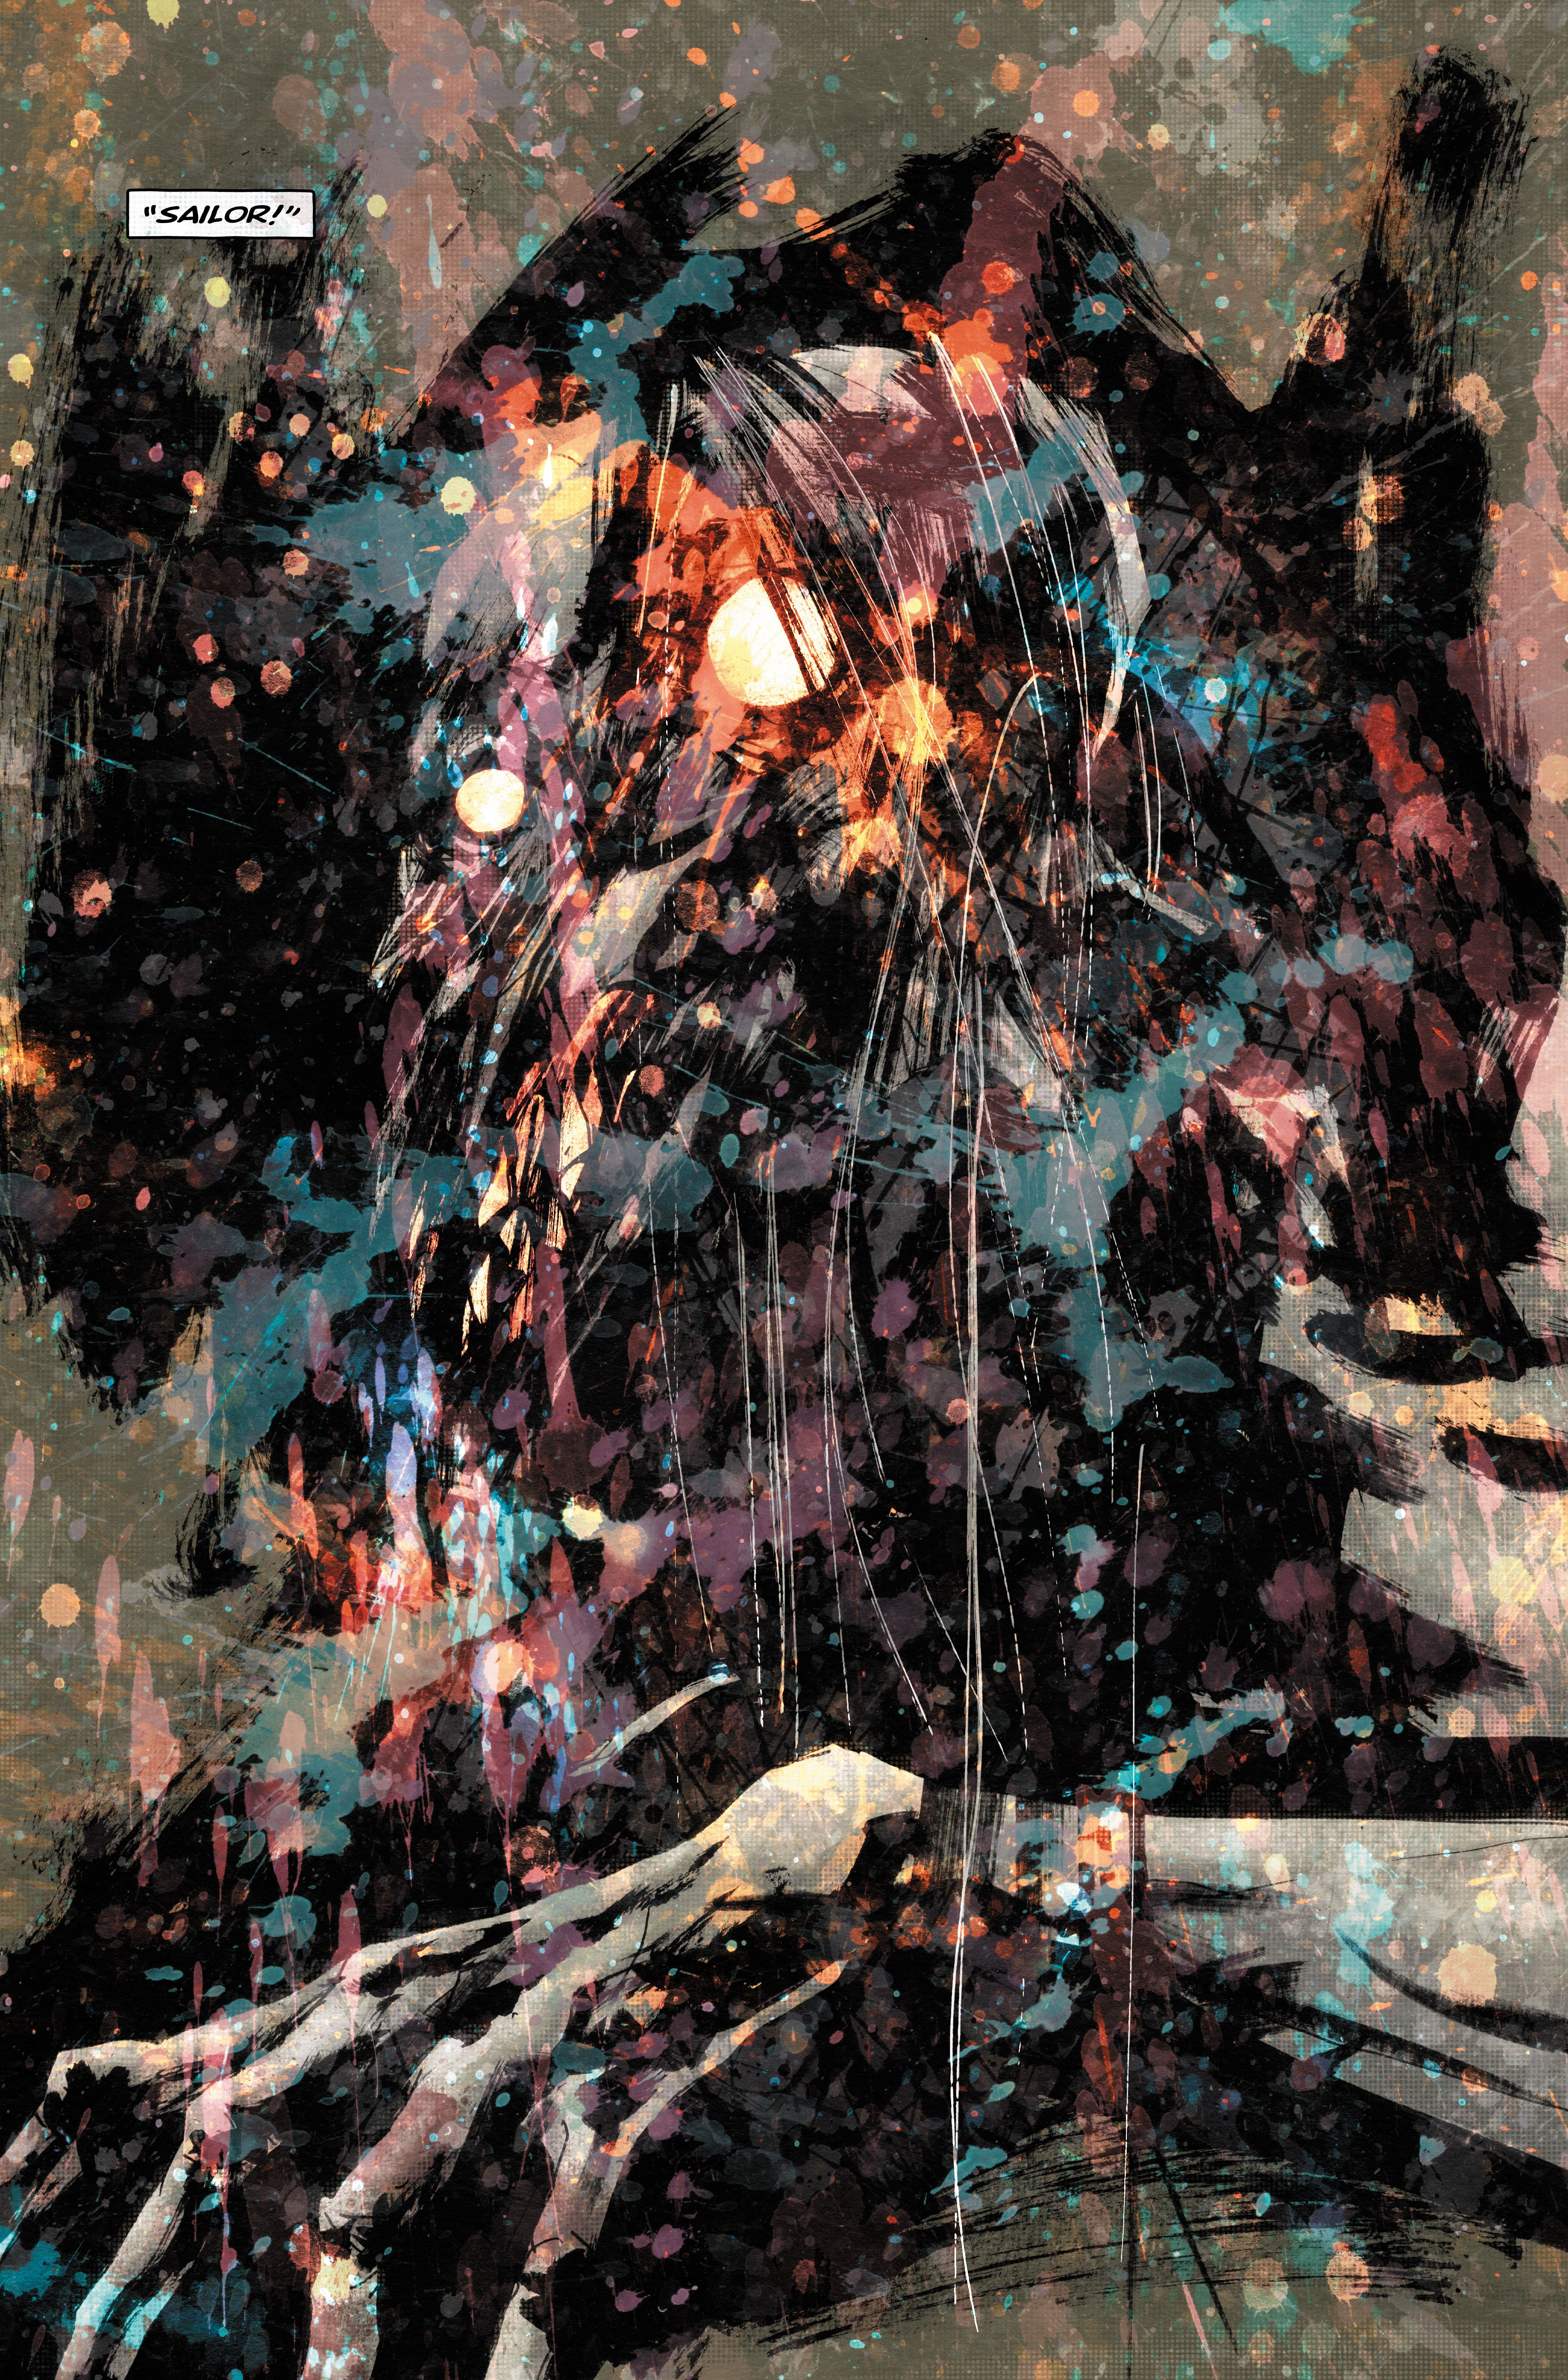 Wytches 2